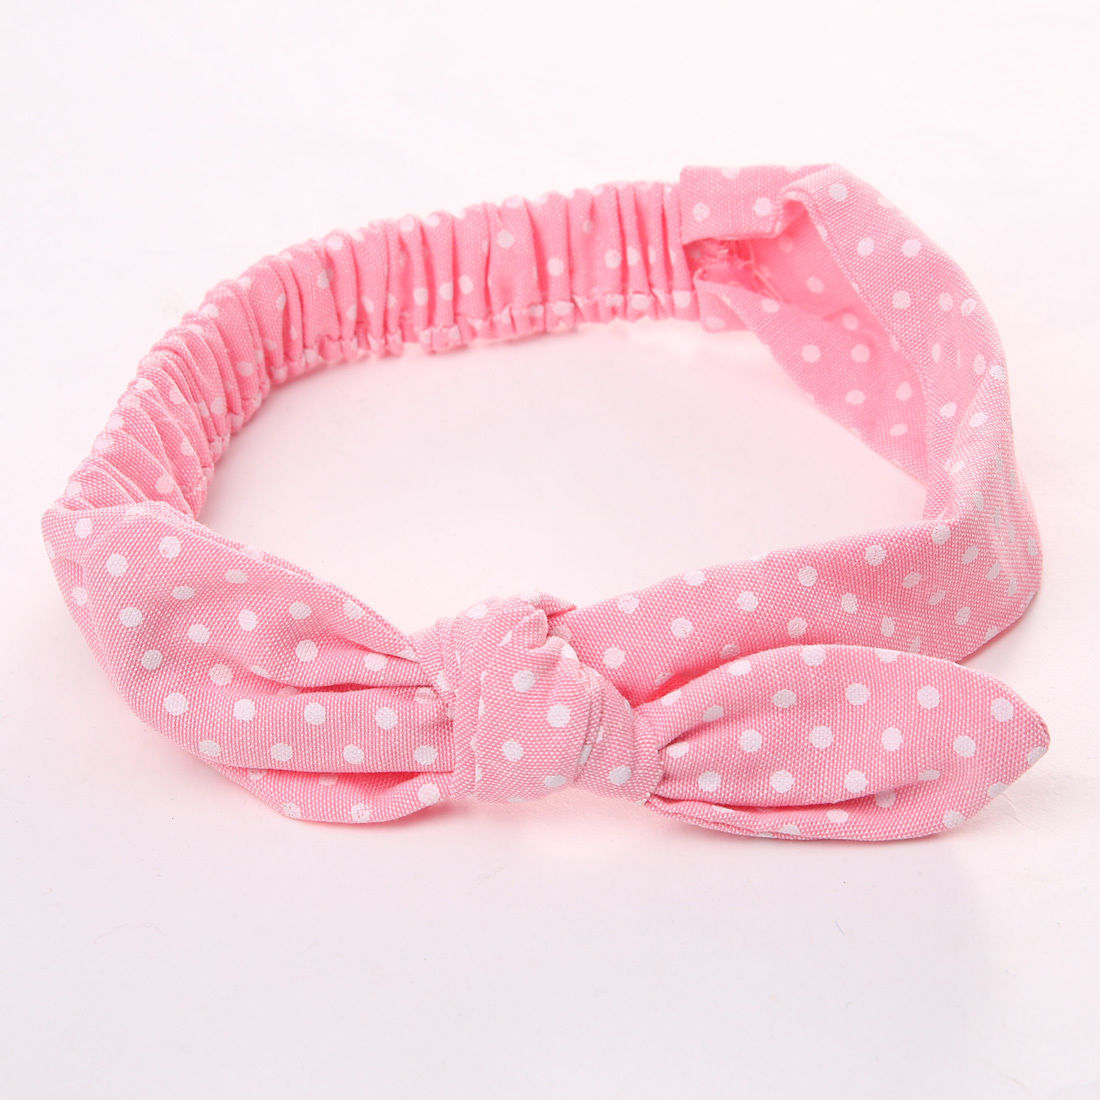 Newborn Baby Headwear Hair Accessories Ear Elastic Headband For Girls Knot Bandage Hairband Turban Headbands Headwrap Outdoor Back To Search Resultsmother & Kids